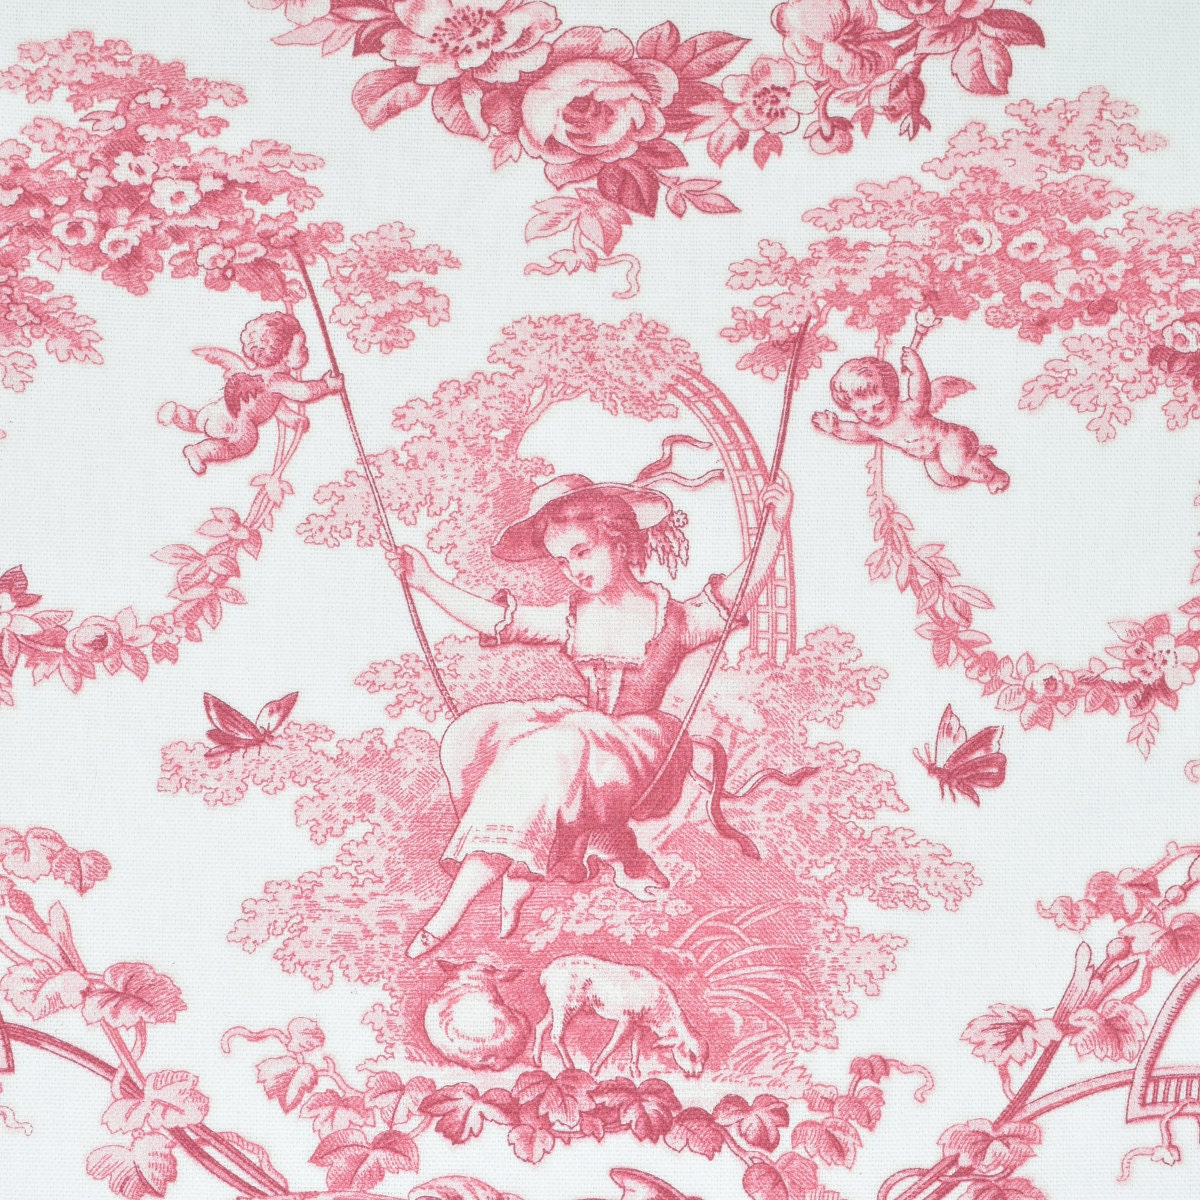 French home decor fabric toile de jouy cotton by meter width - Toile de jouy decoration ...